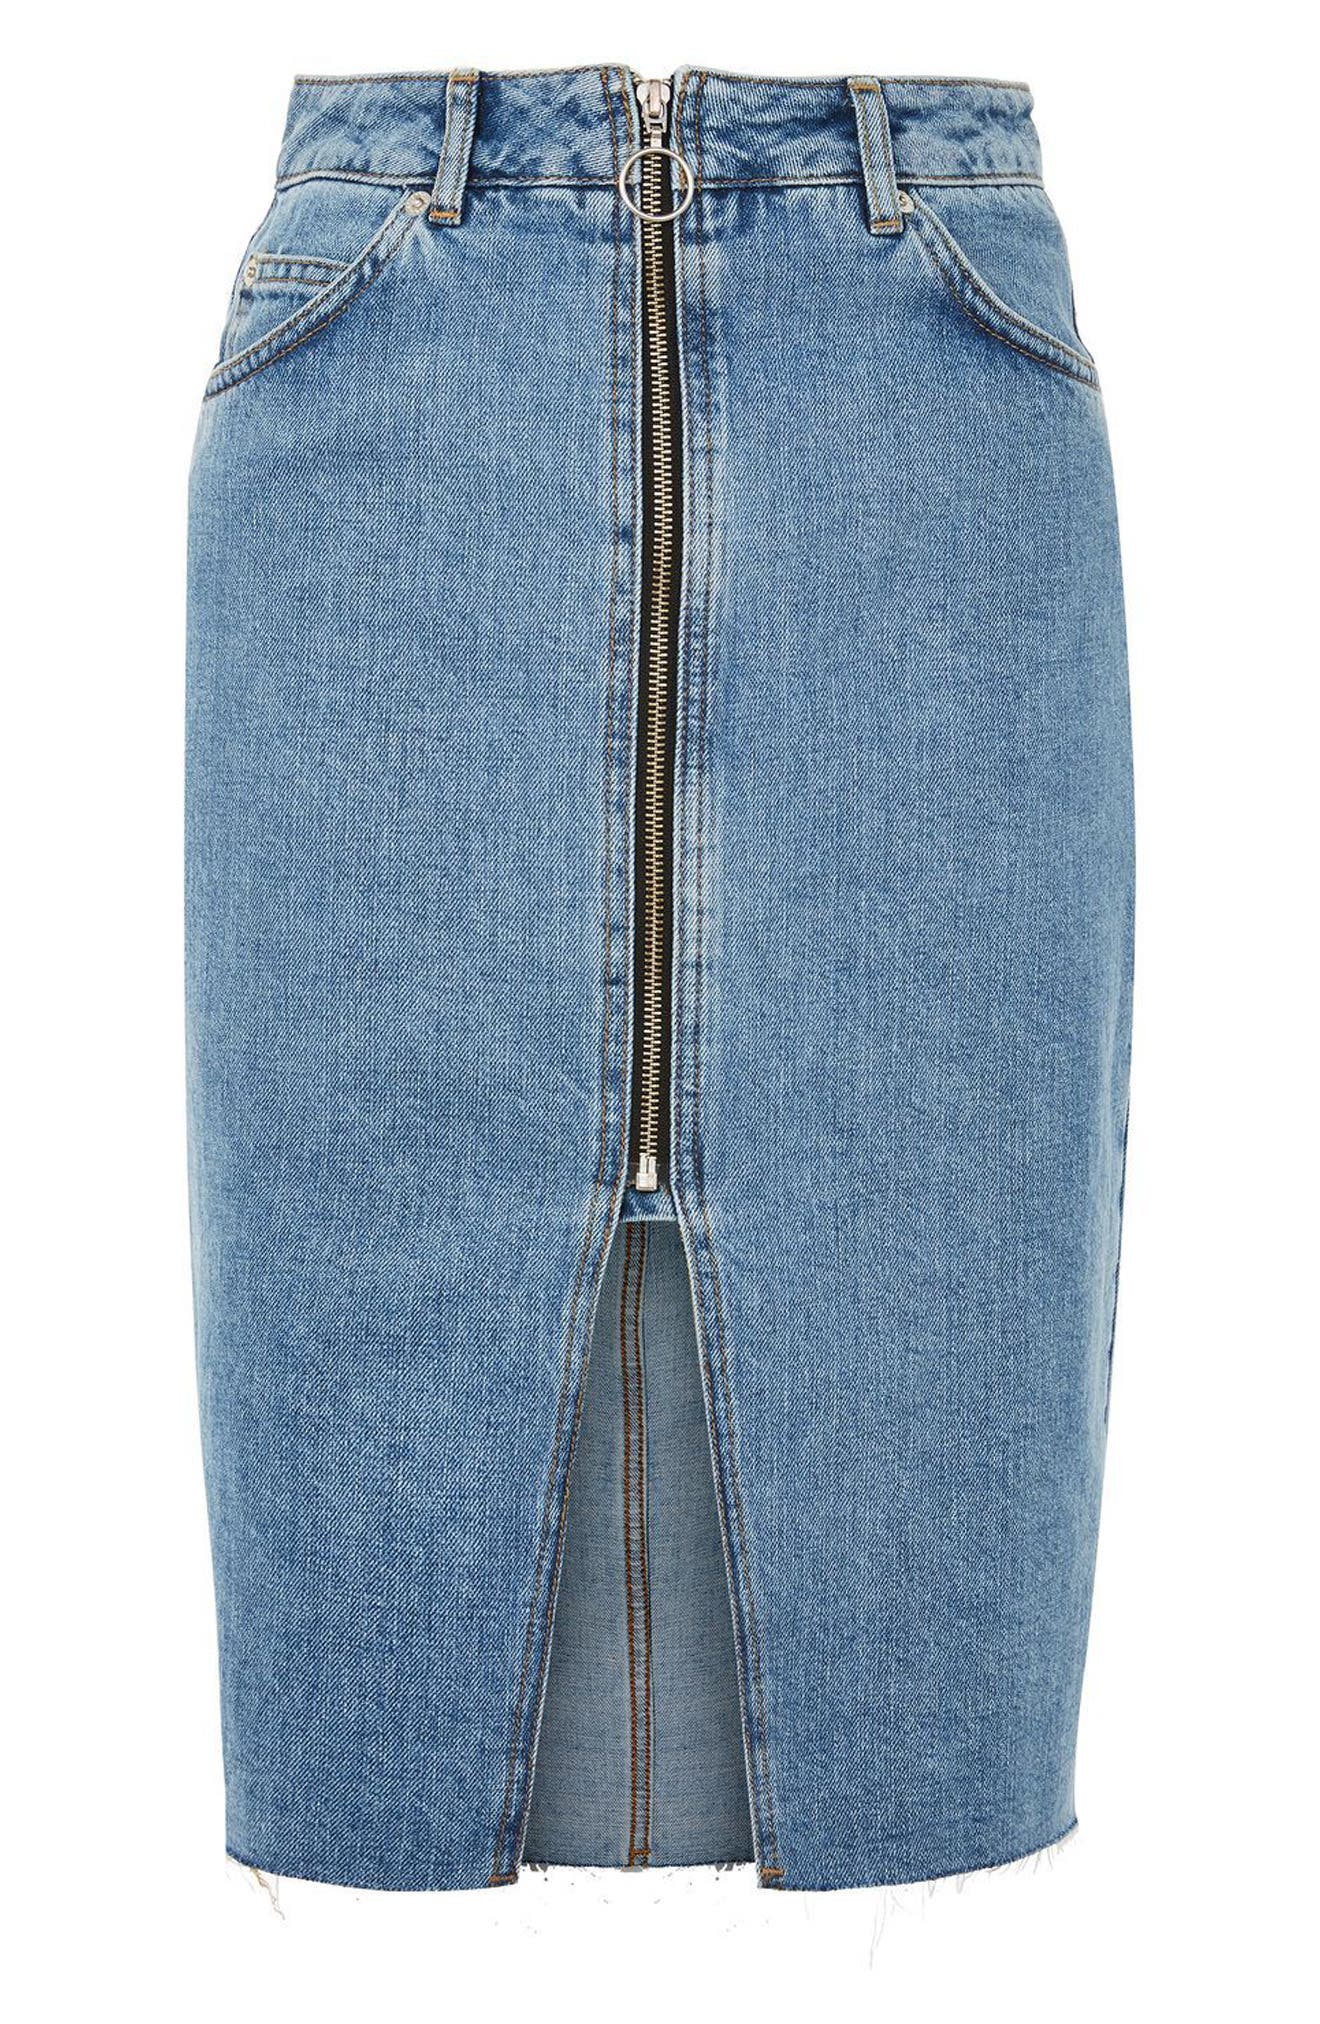 Main Image - Topshop Zip Denim Skirt